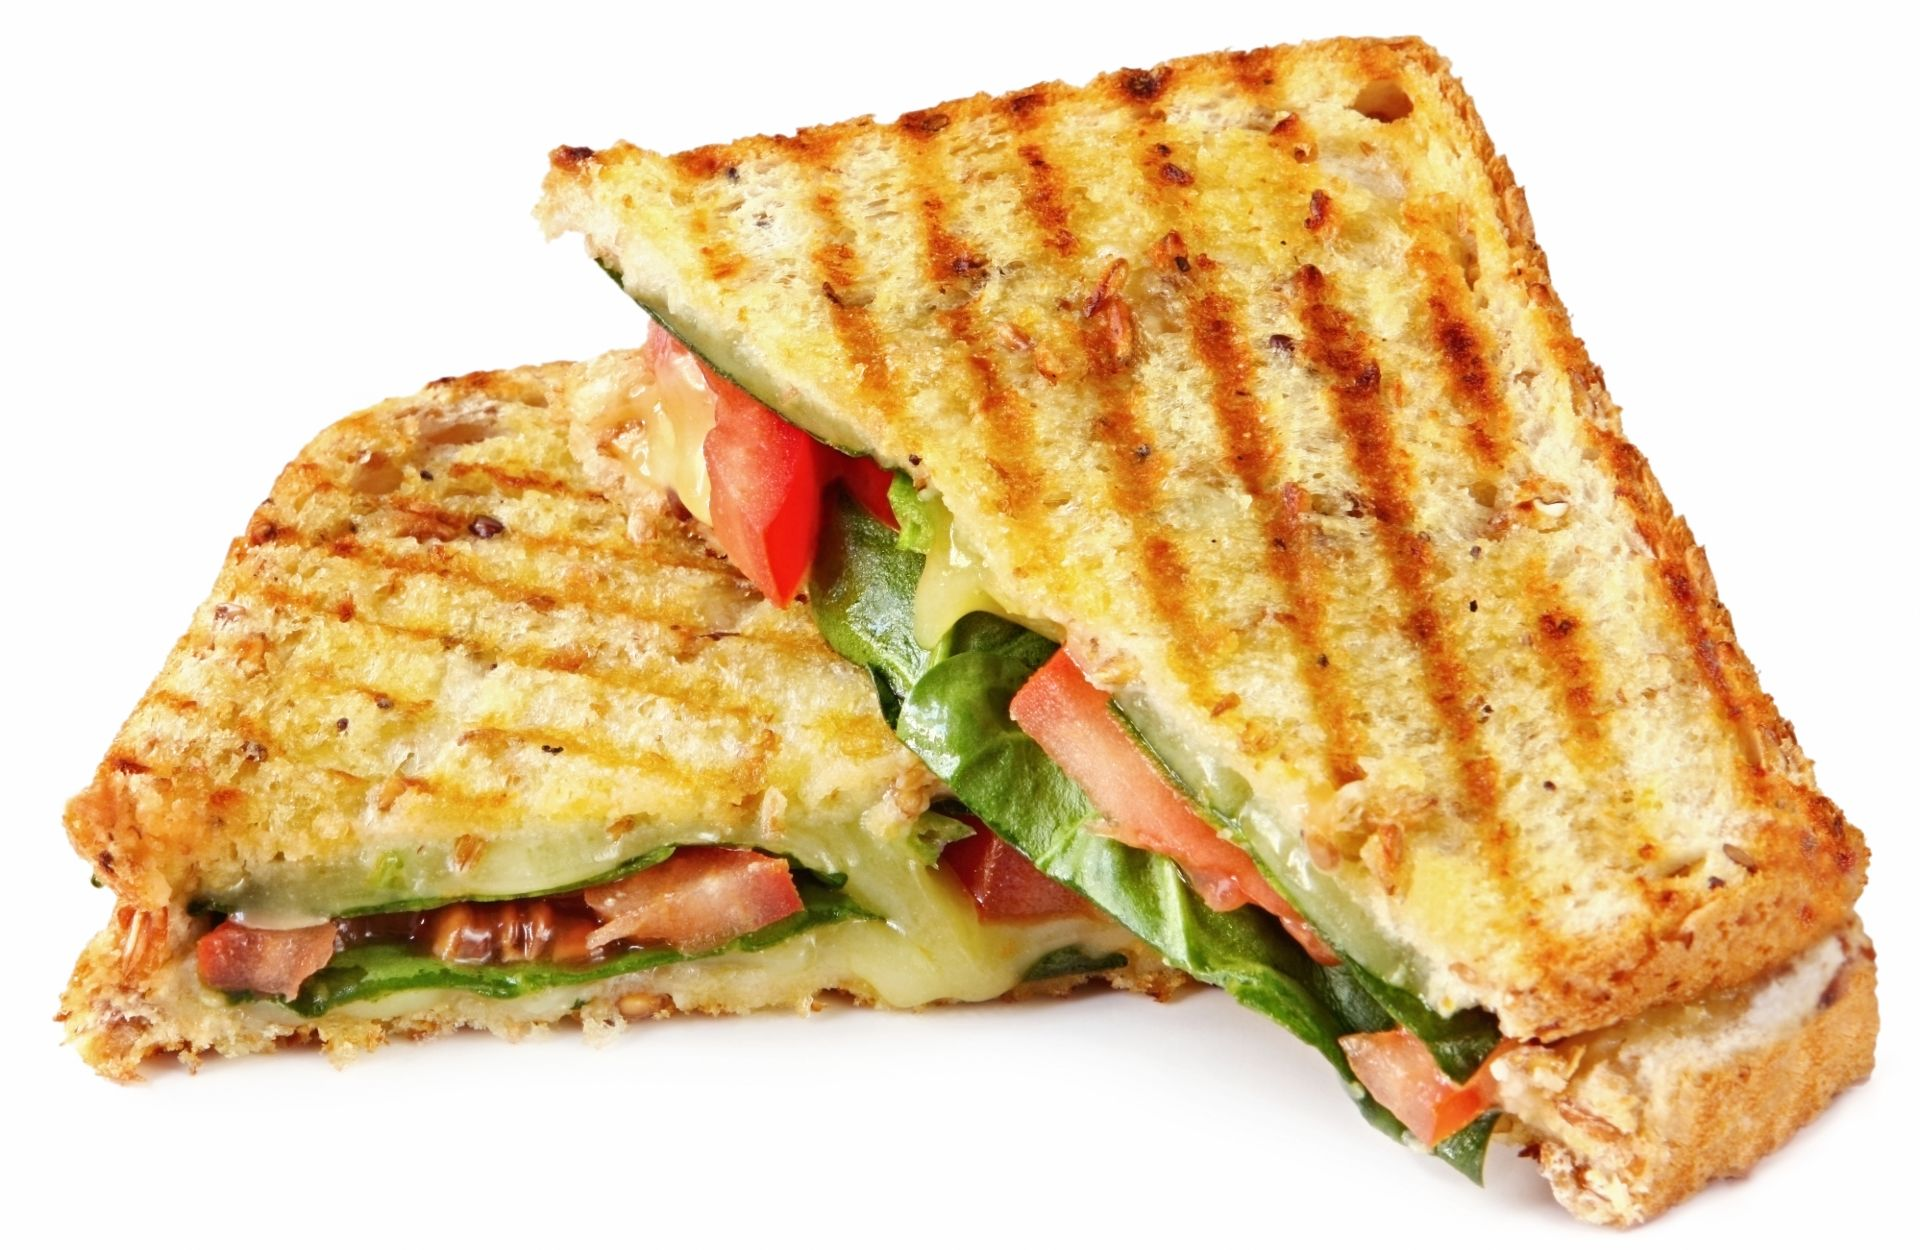 Grilled panini with lettuce, tomato and cheese